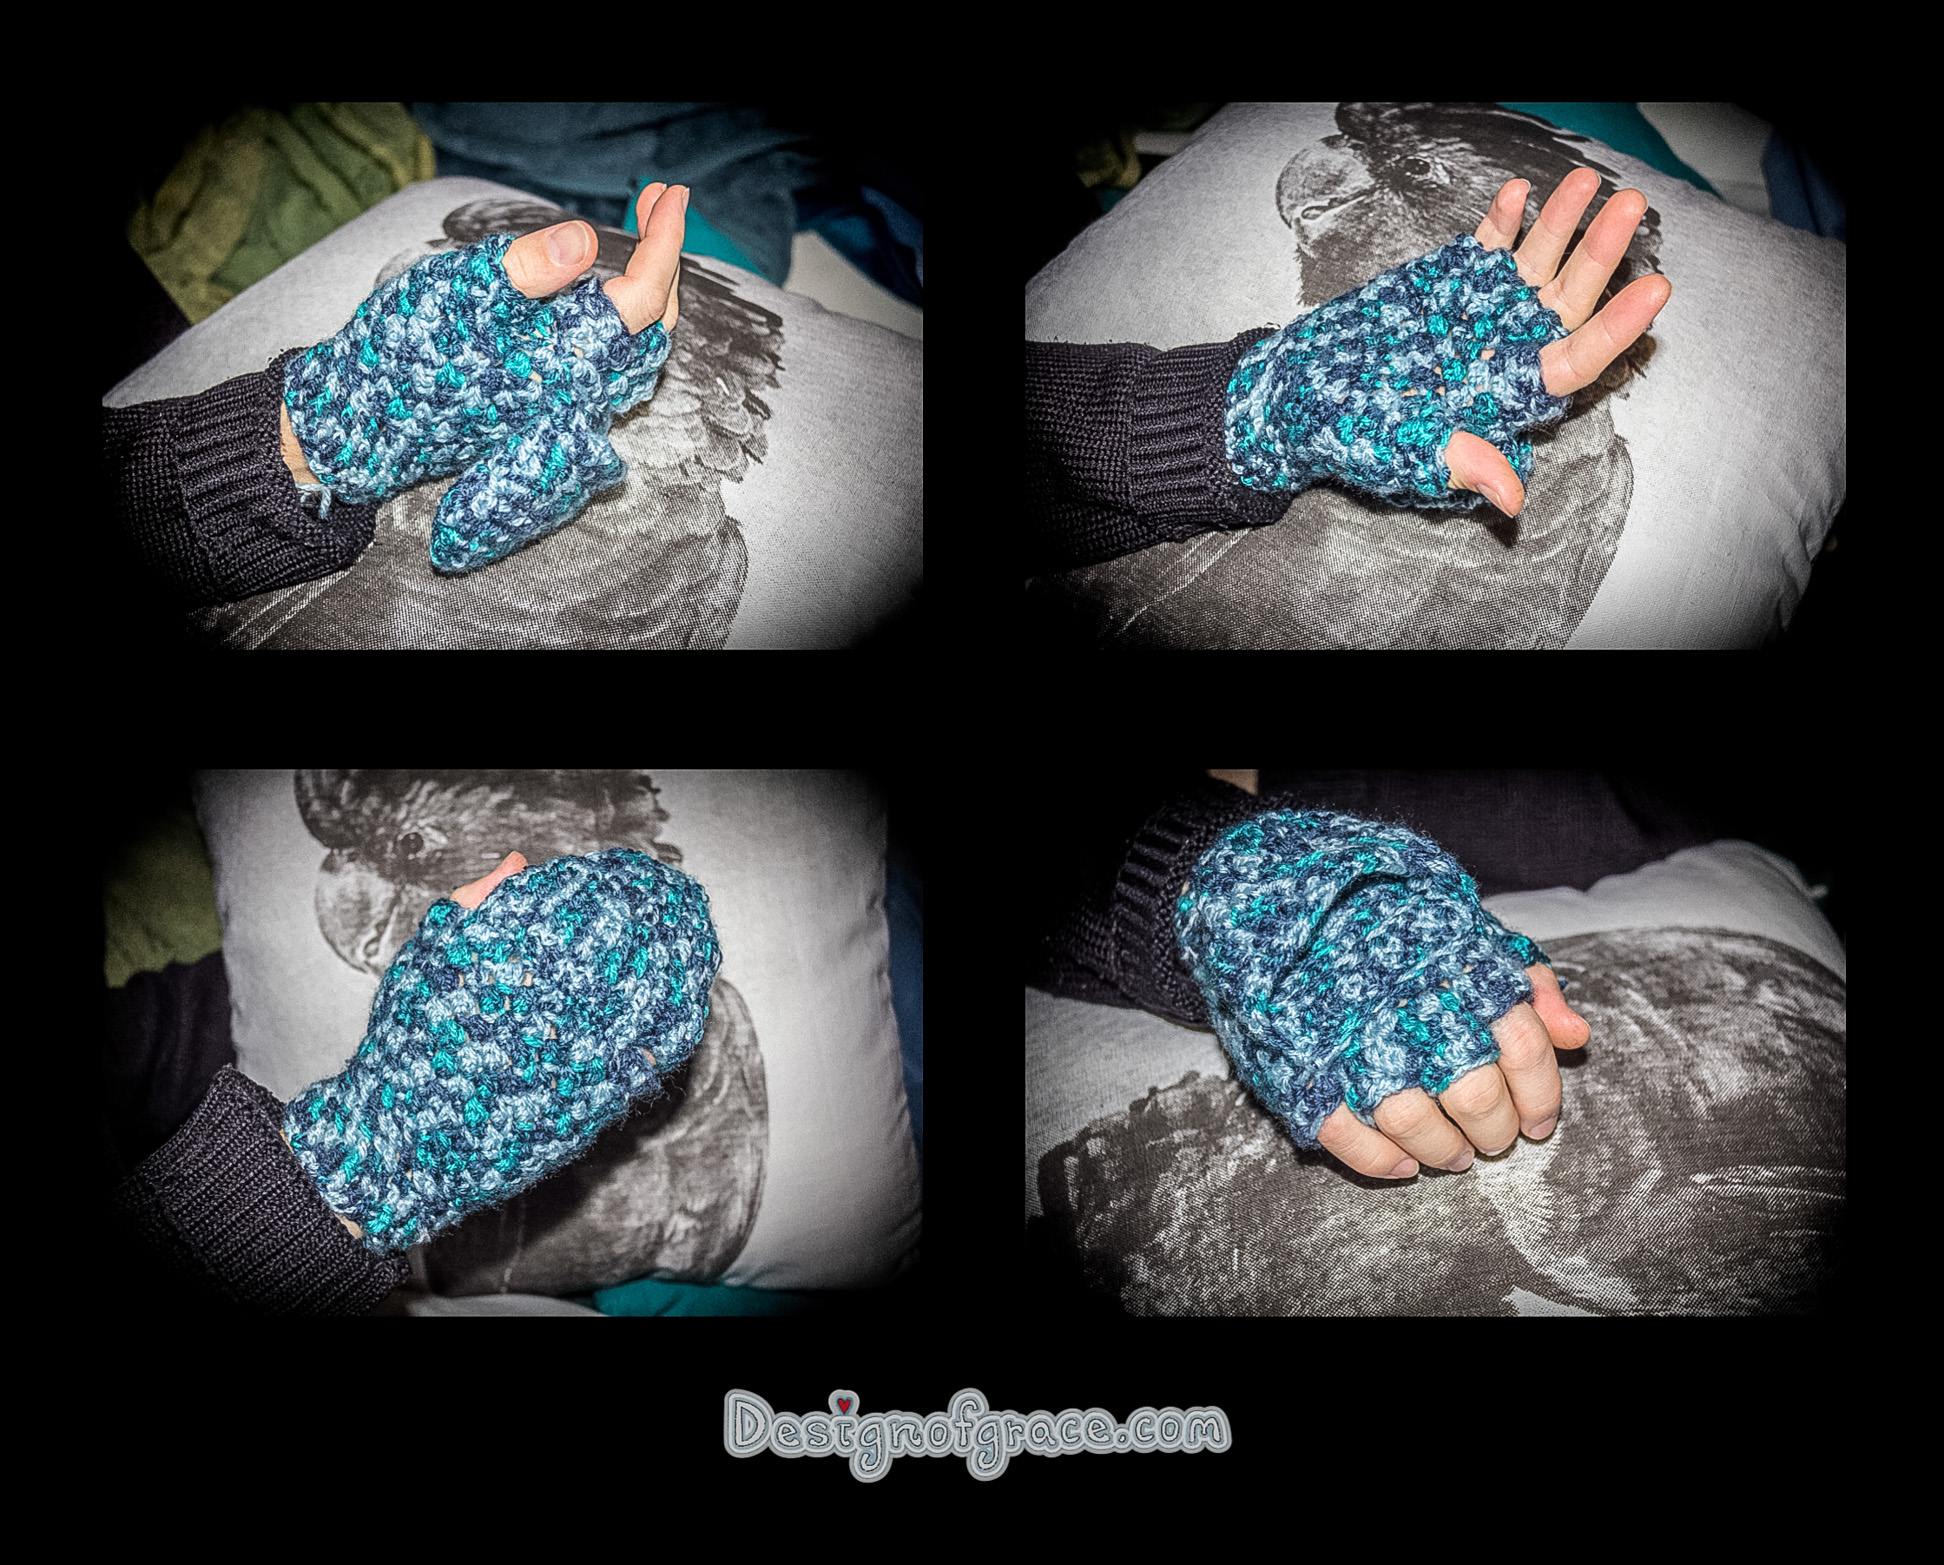 050716 crocheted gloves_